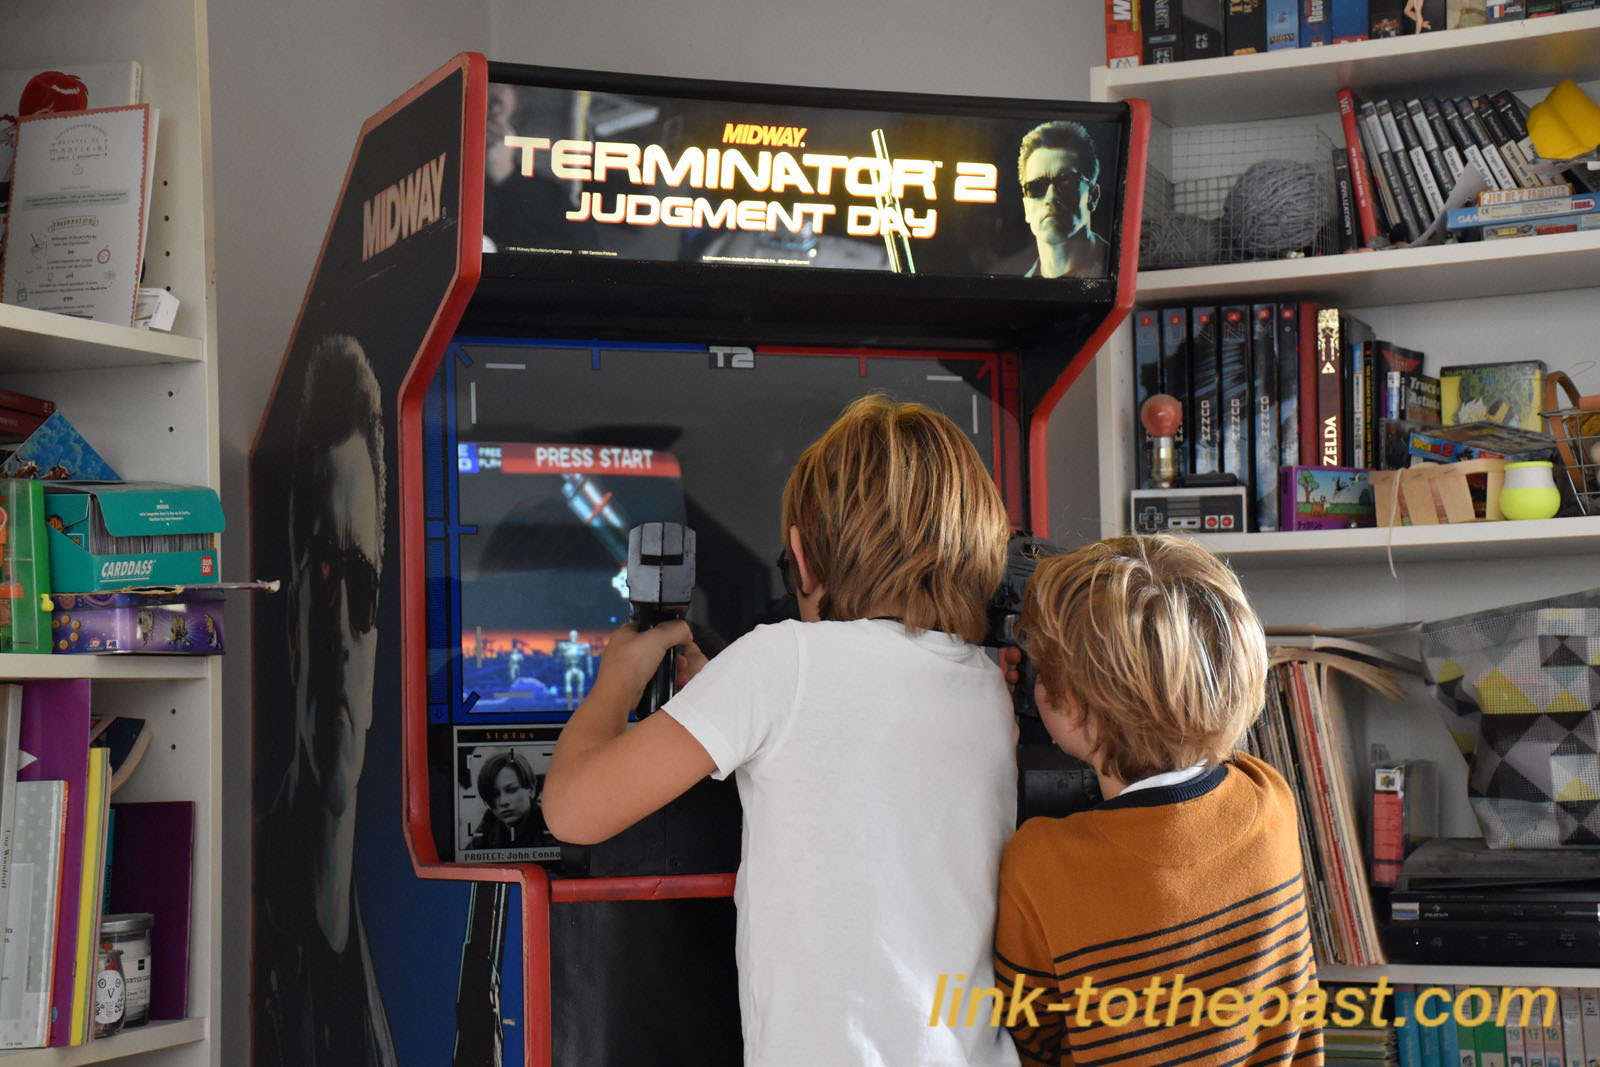 Playing Terminator 2 The Judgement Day